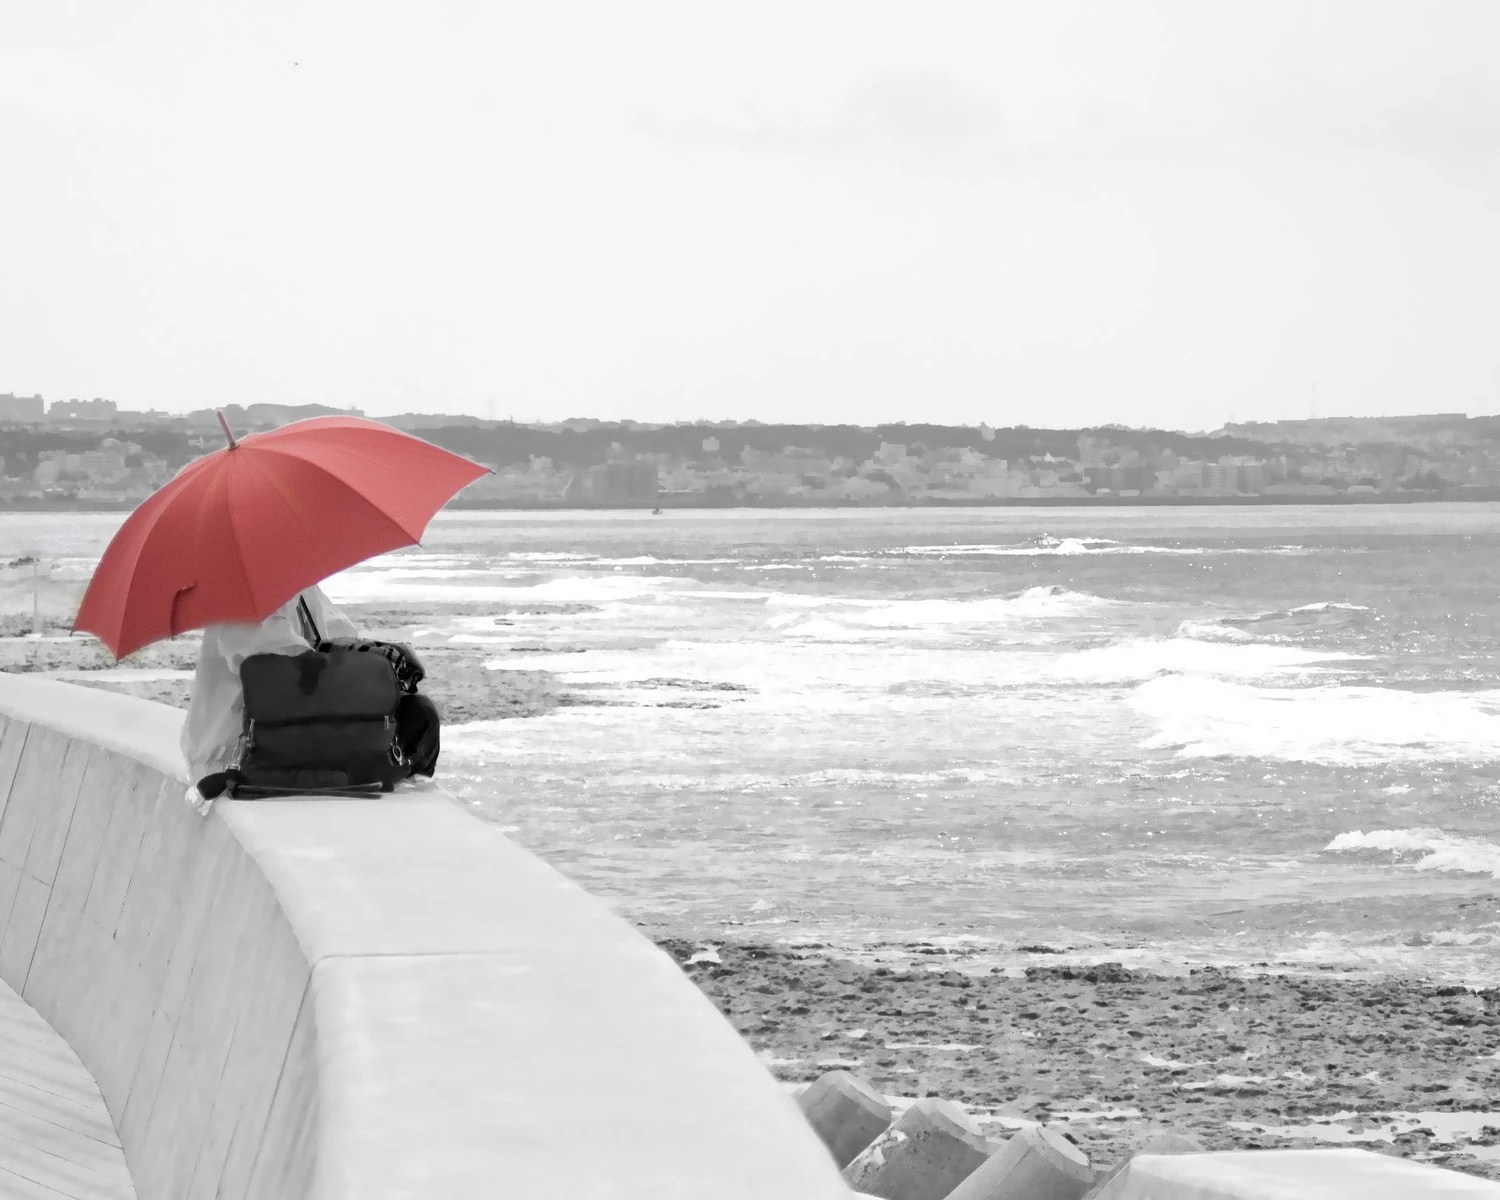 Abstract Photography -Black White Red Art, Red Home Decor, Red Wall Art,  8x10 Print Burgunday Maroon Red Umbrella Travel Photo - BreeMadden